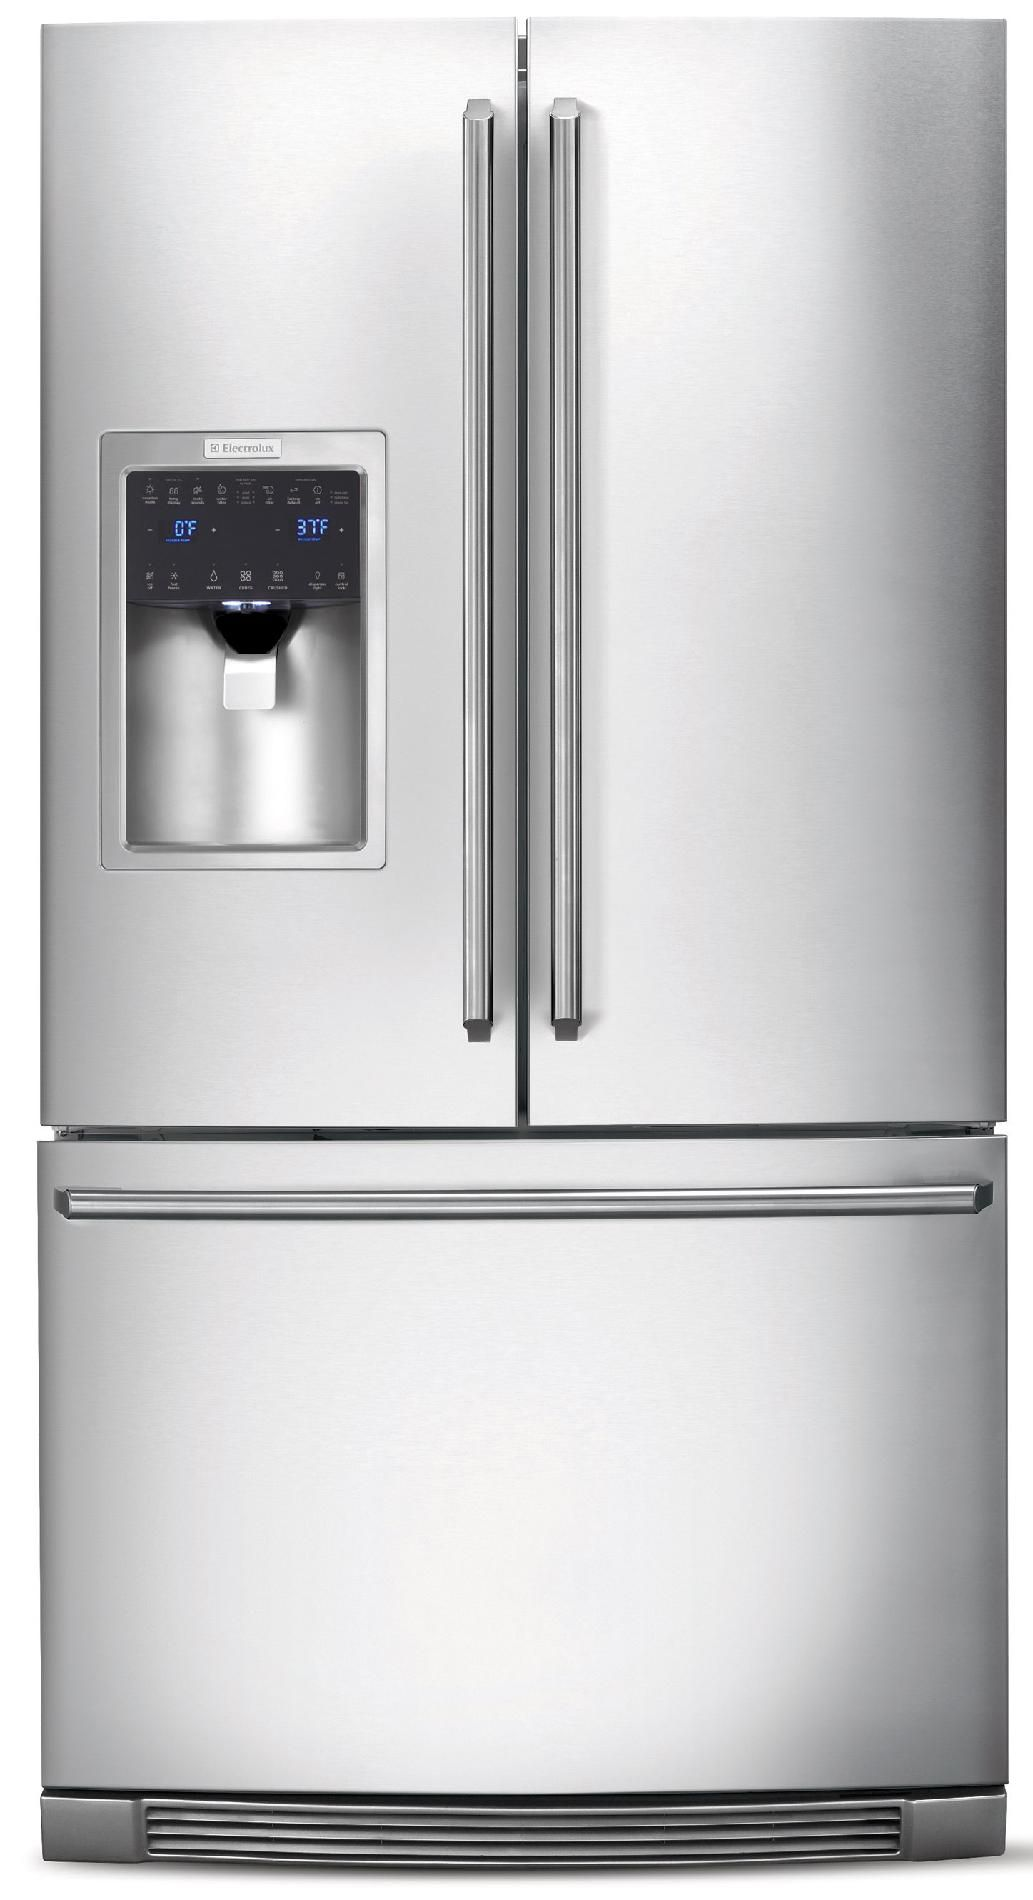 Frigidaire Gallery Fghf2366pf 22 6 Cu Ft Counter Depth French